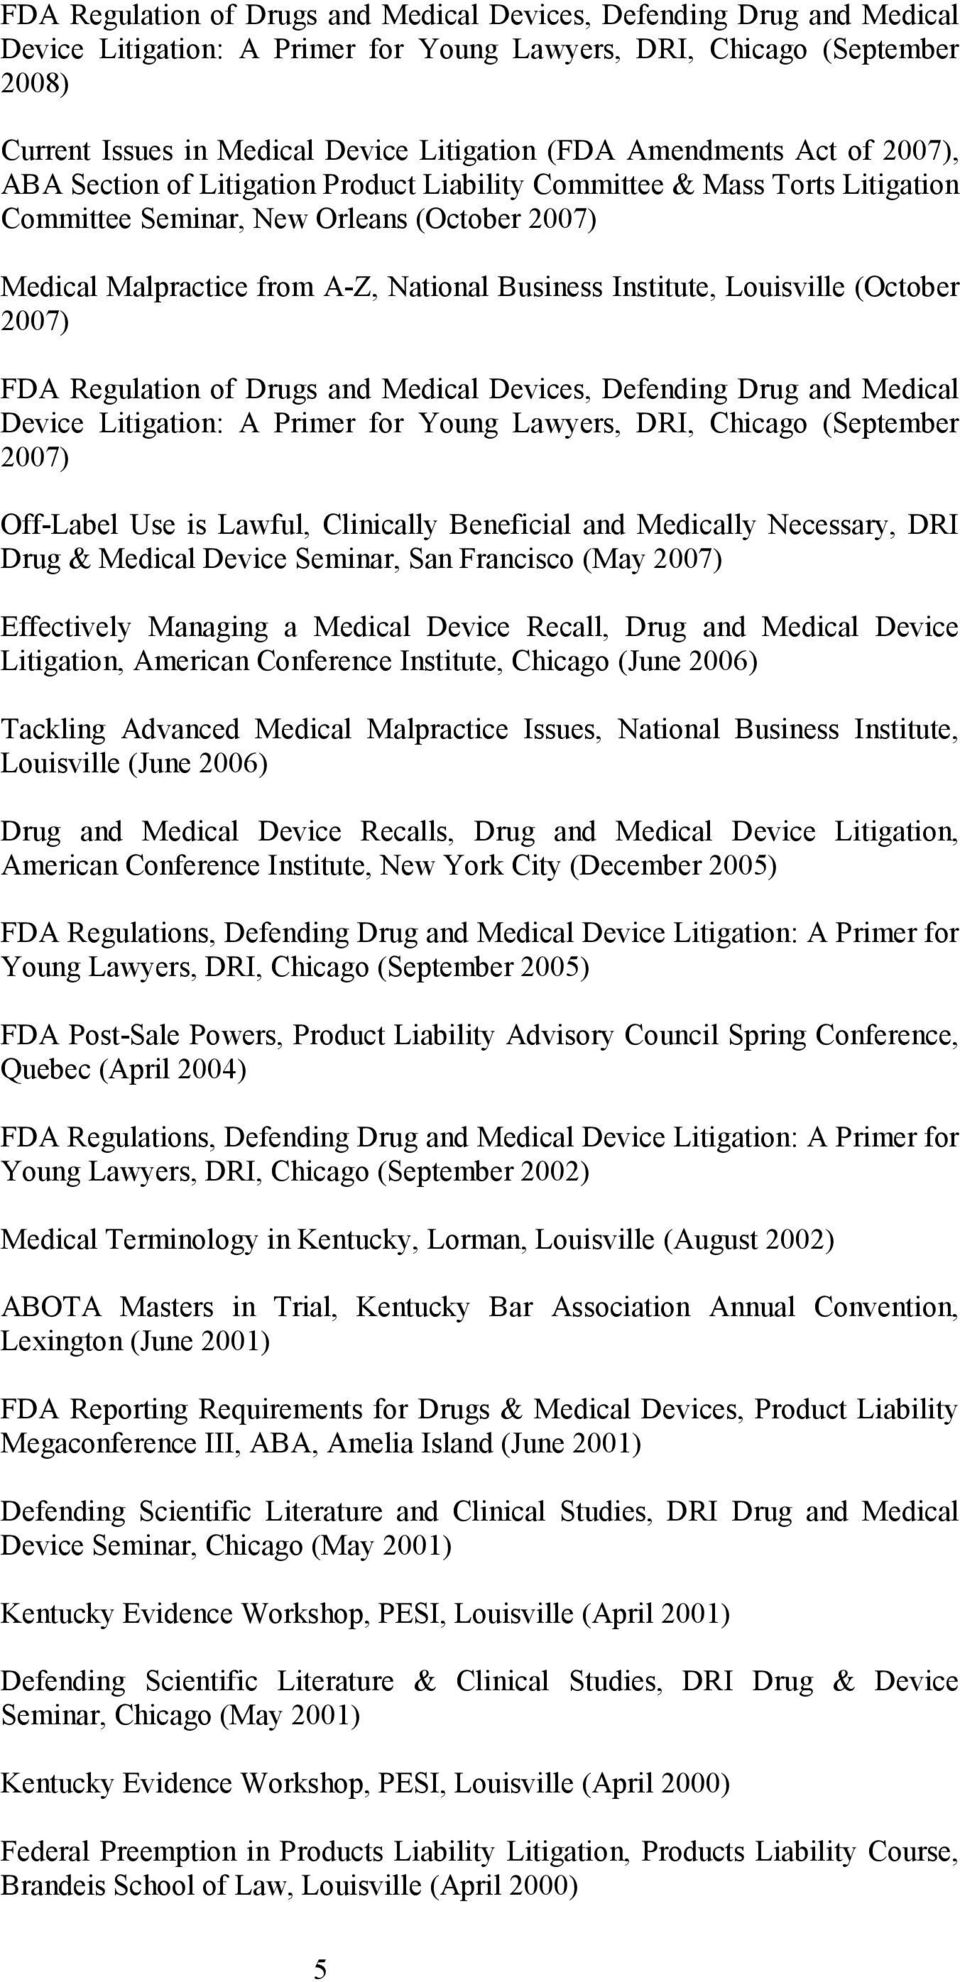 Institute, Louisville (October 2007) FDA Regulation of Drugs and Medical Devices, Defending Drug and Medical Device Litigation: A Primer for Young Lawyers, DRI, Chicago (September 2007) Off-Label Use